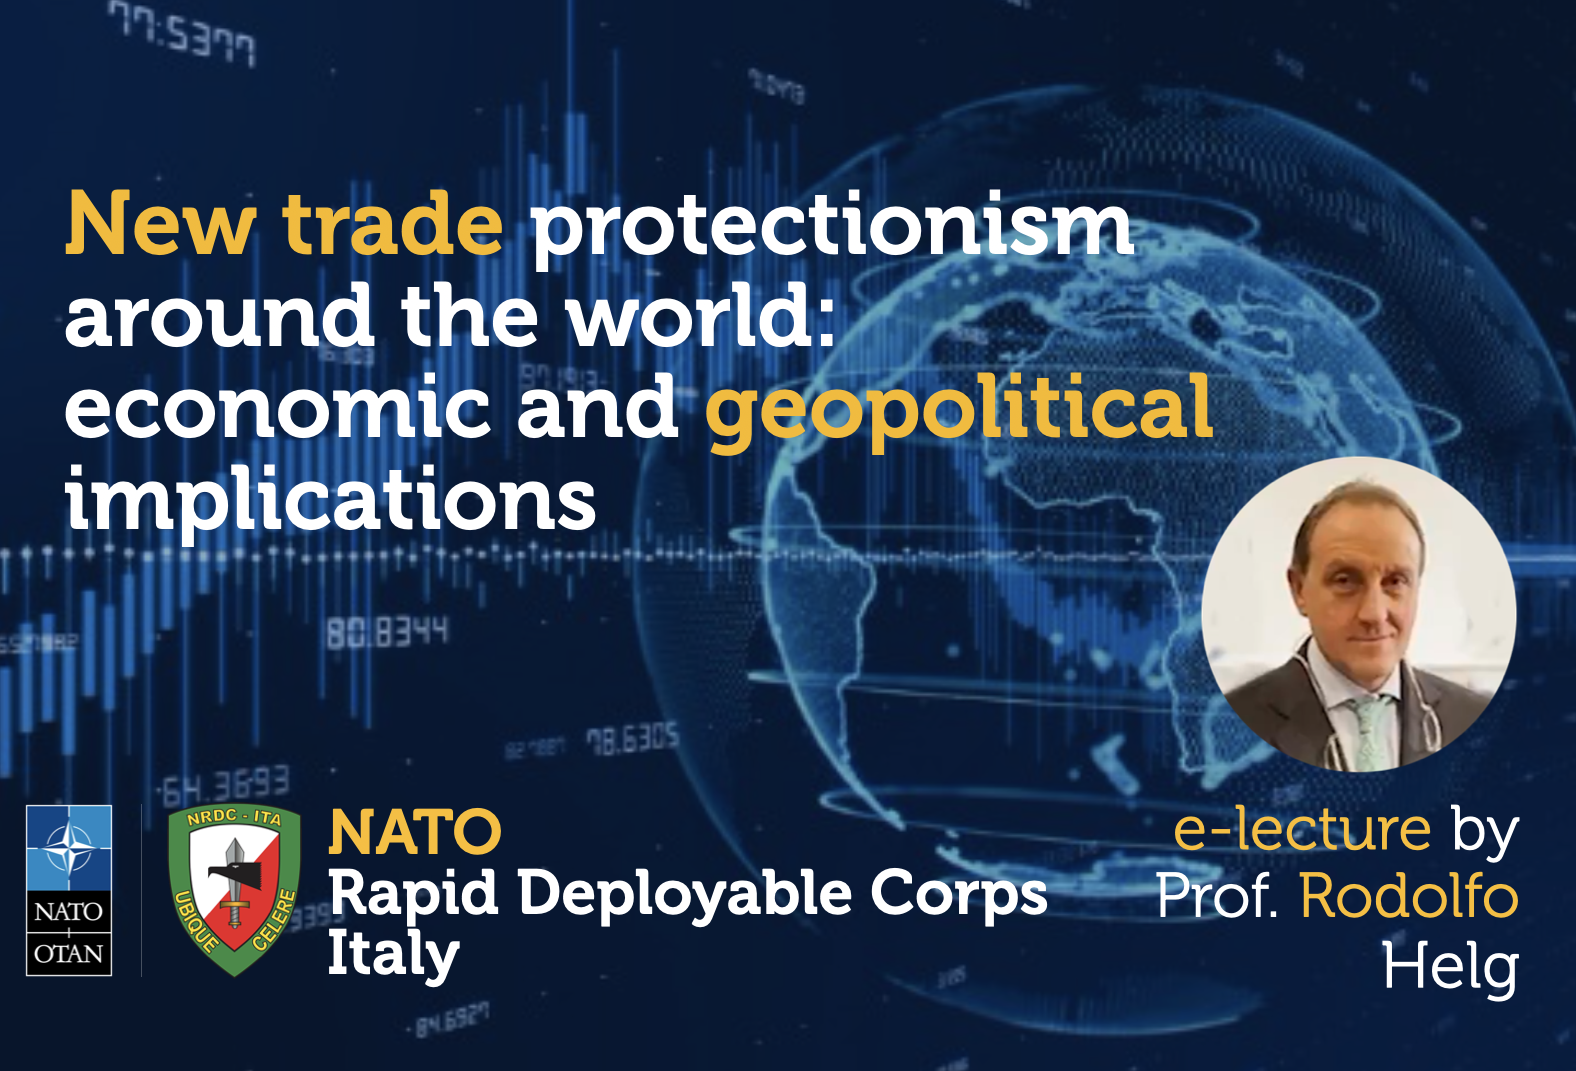 Conference at NRDC-ITA on the economic and geopolitical implications of Neo-protectionism in World Trade.